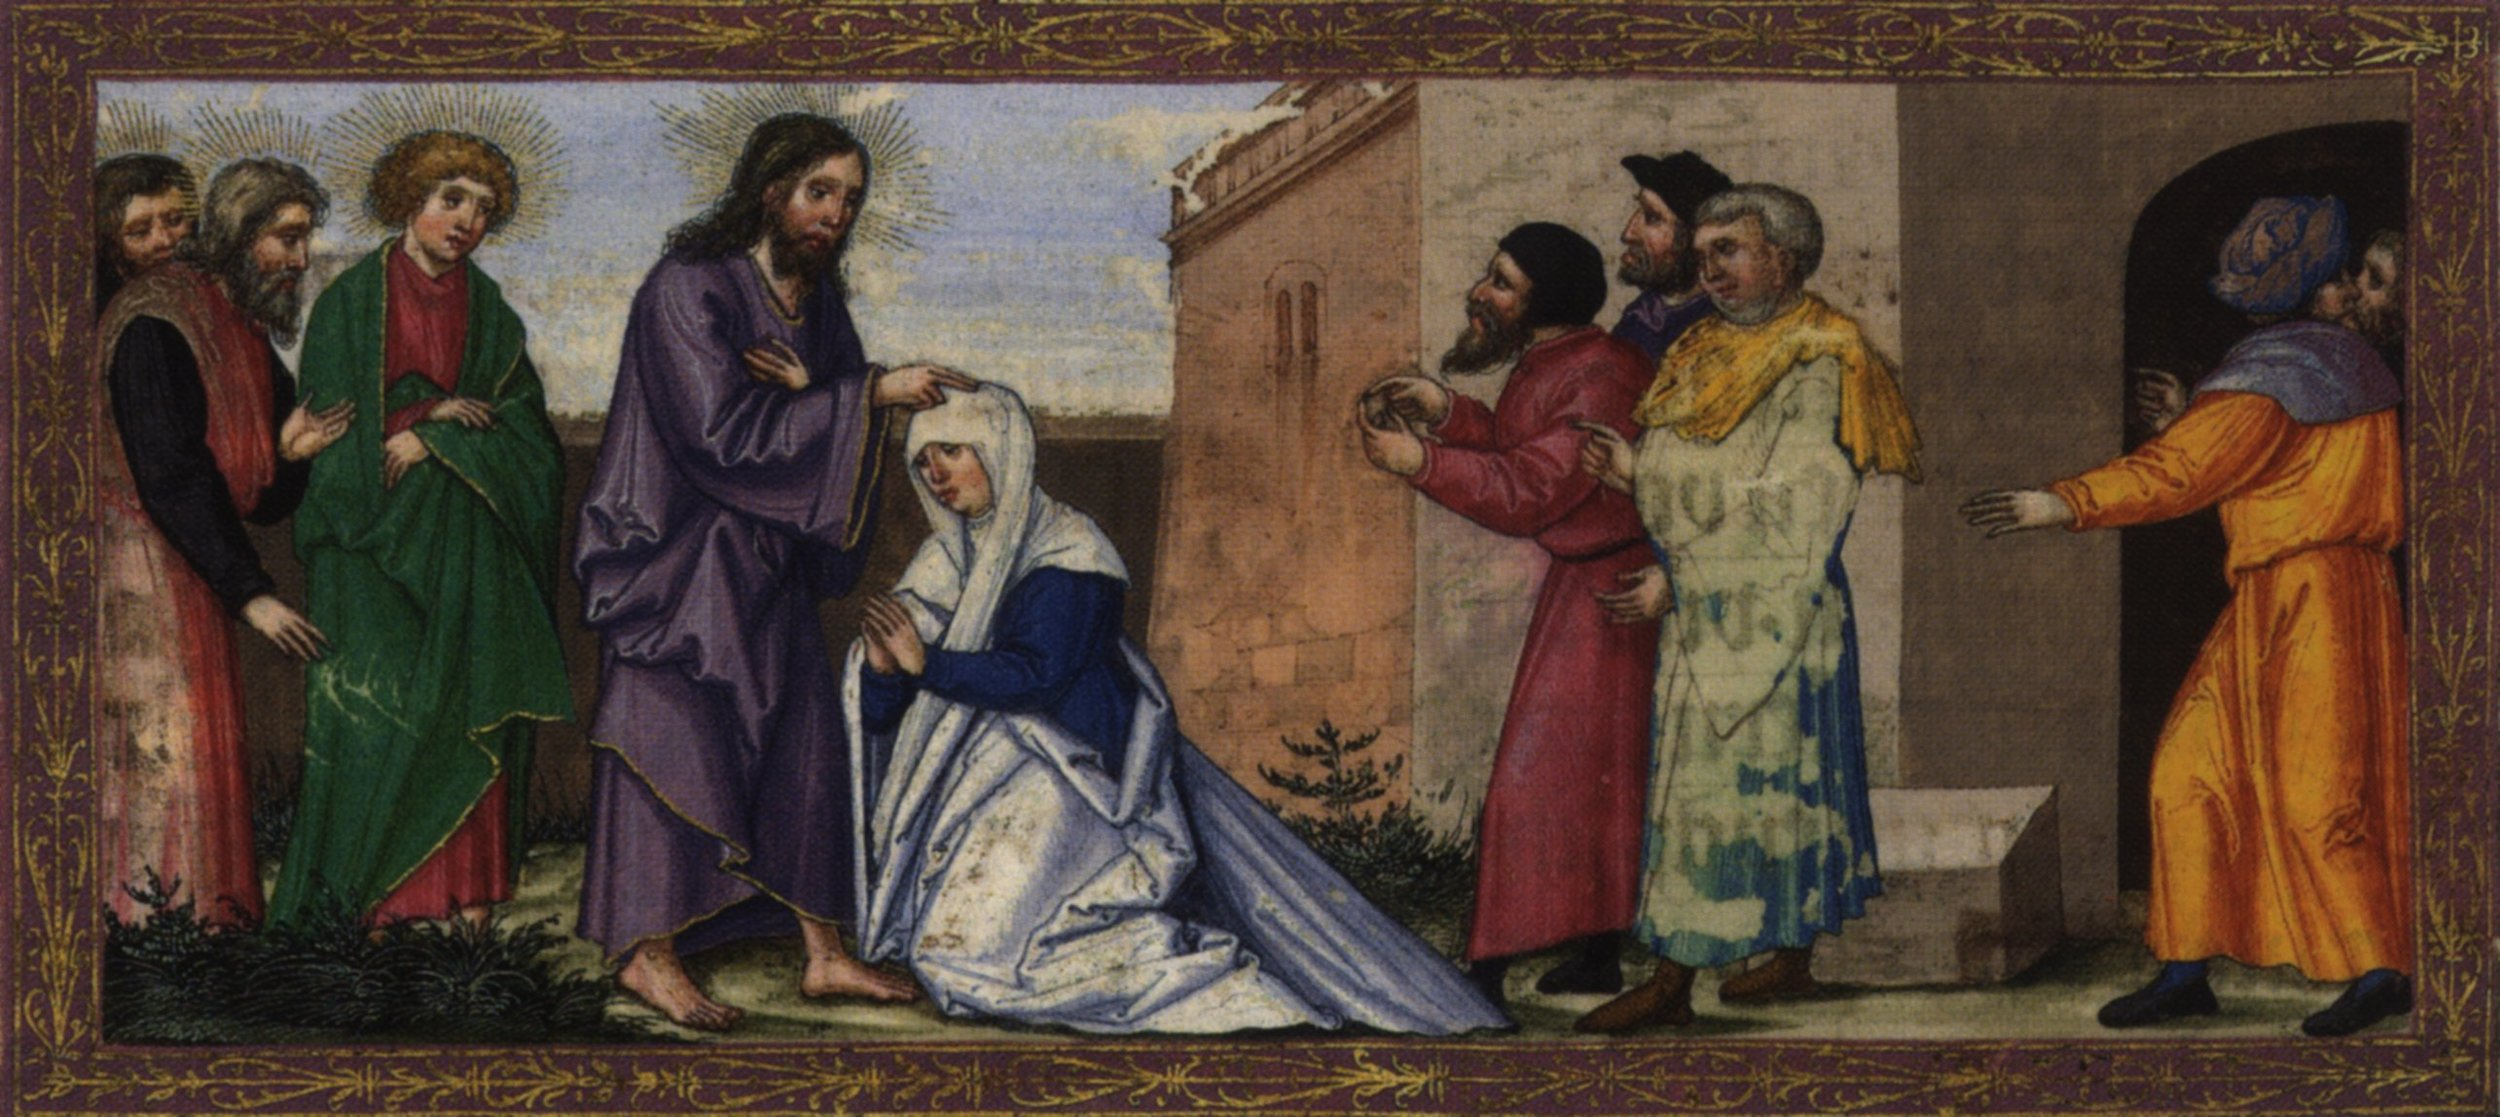 Jesus healing the woman at the synagogue, by Ottheinrich.